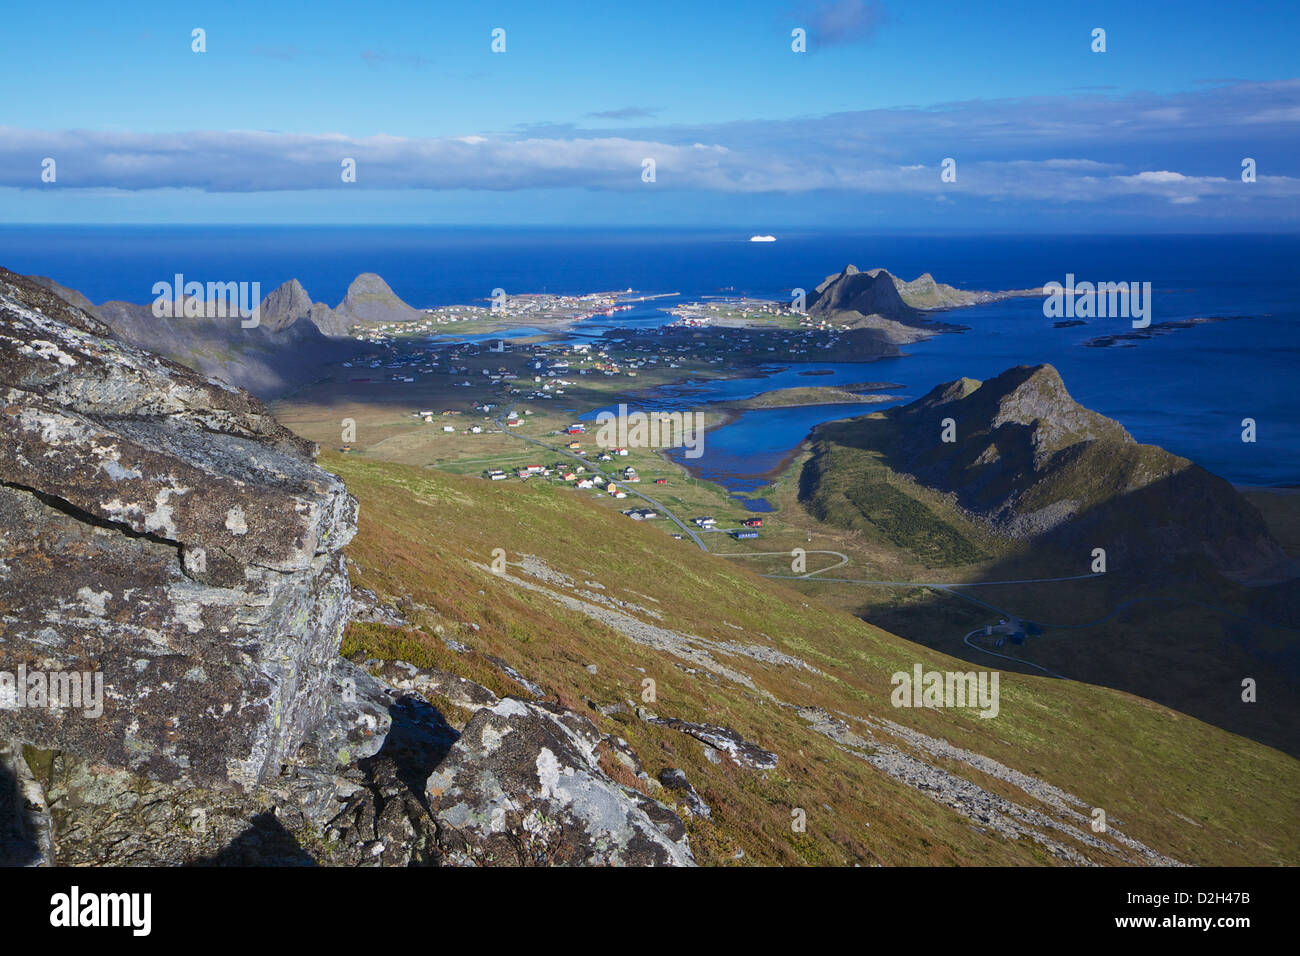 Scenic fishing town of Sorland on Vearoy, Lofoten islands in Norway - Stock Image